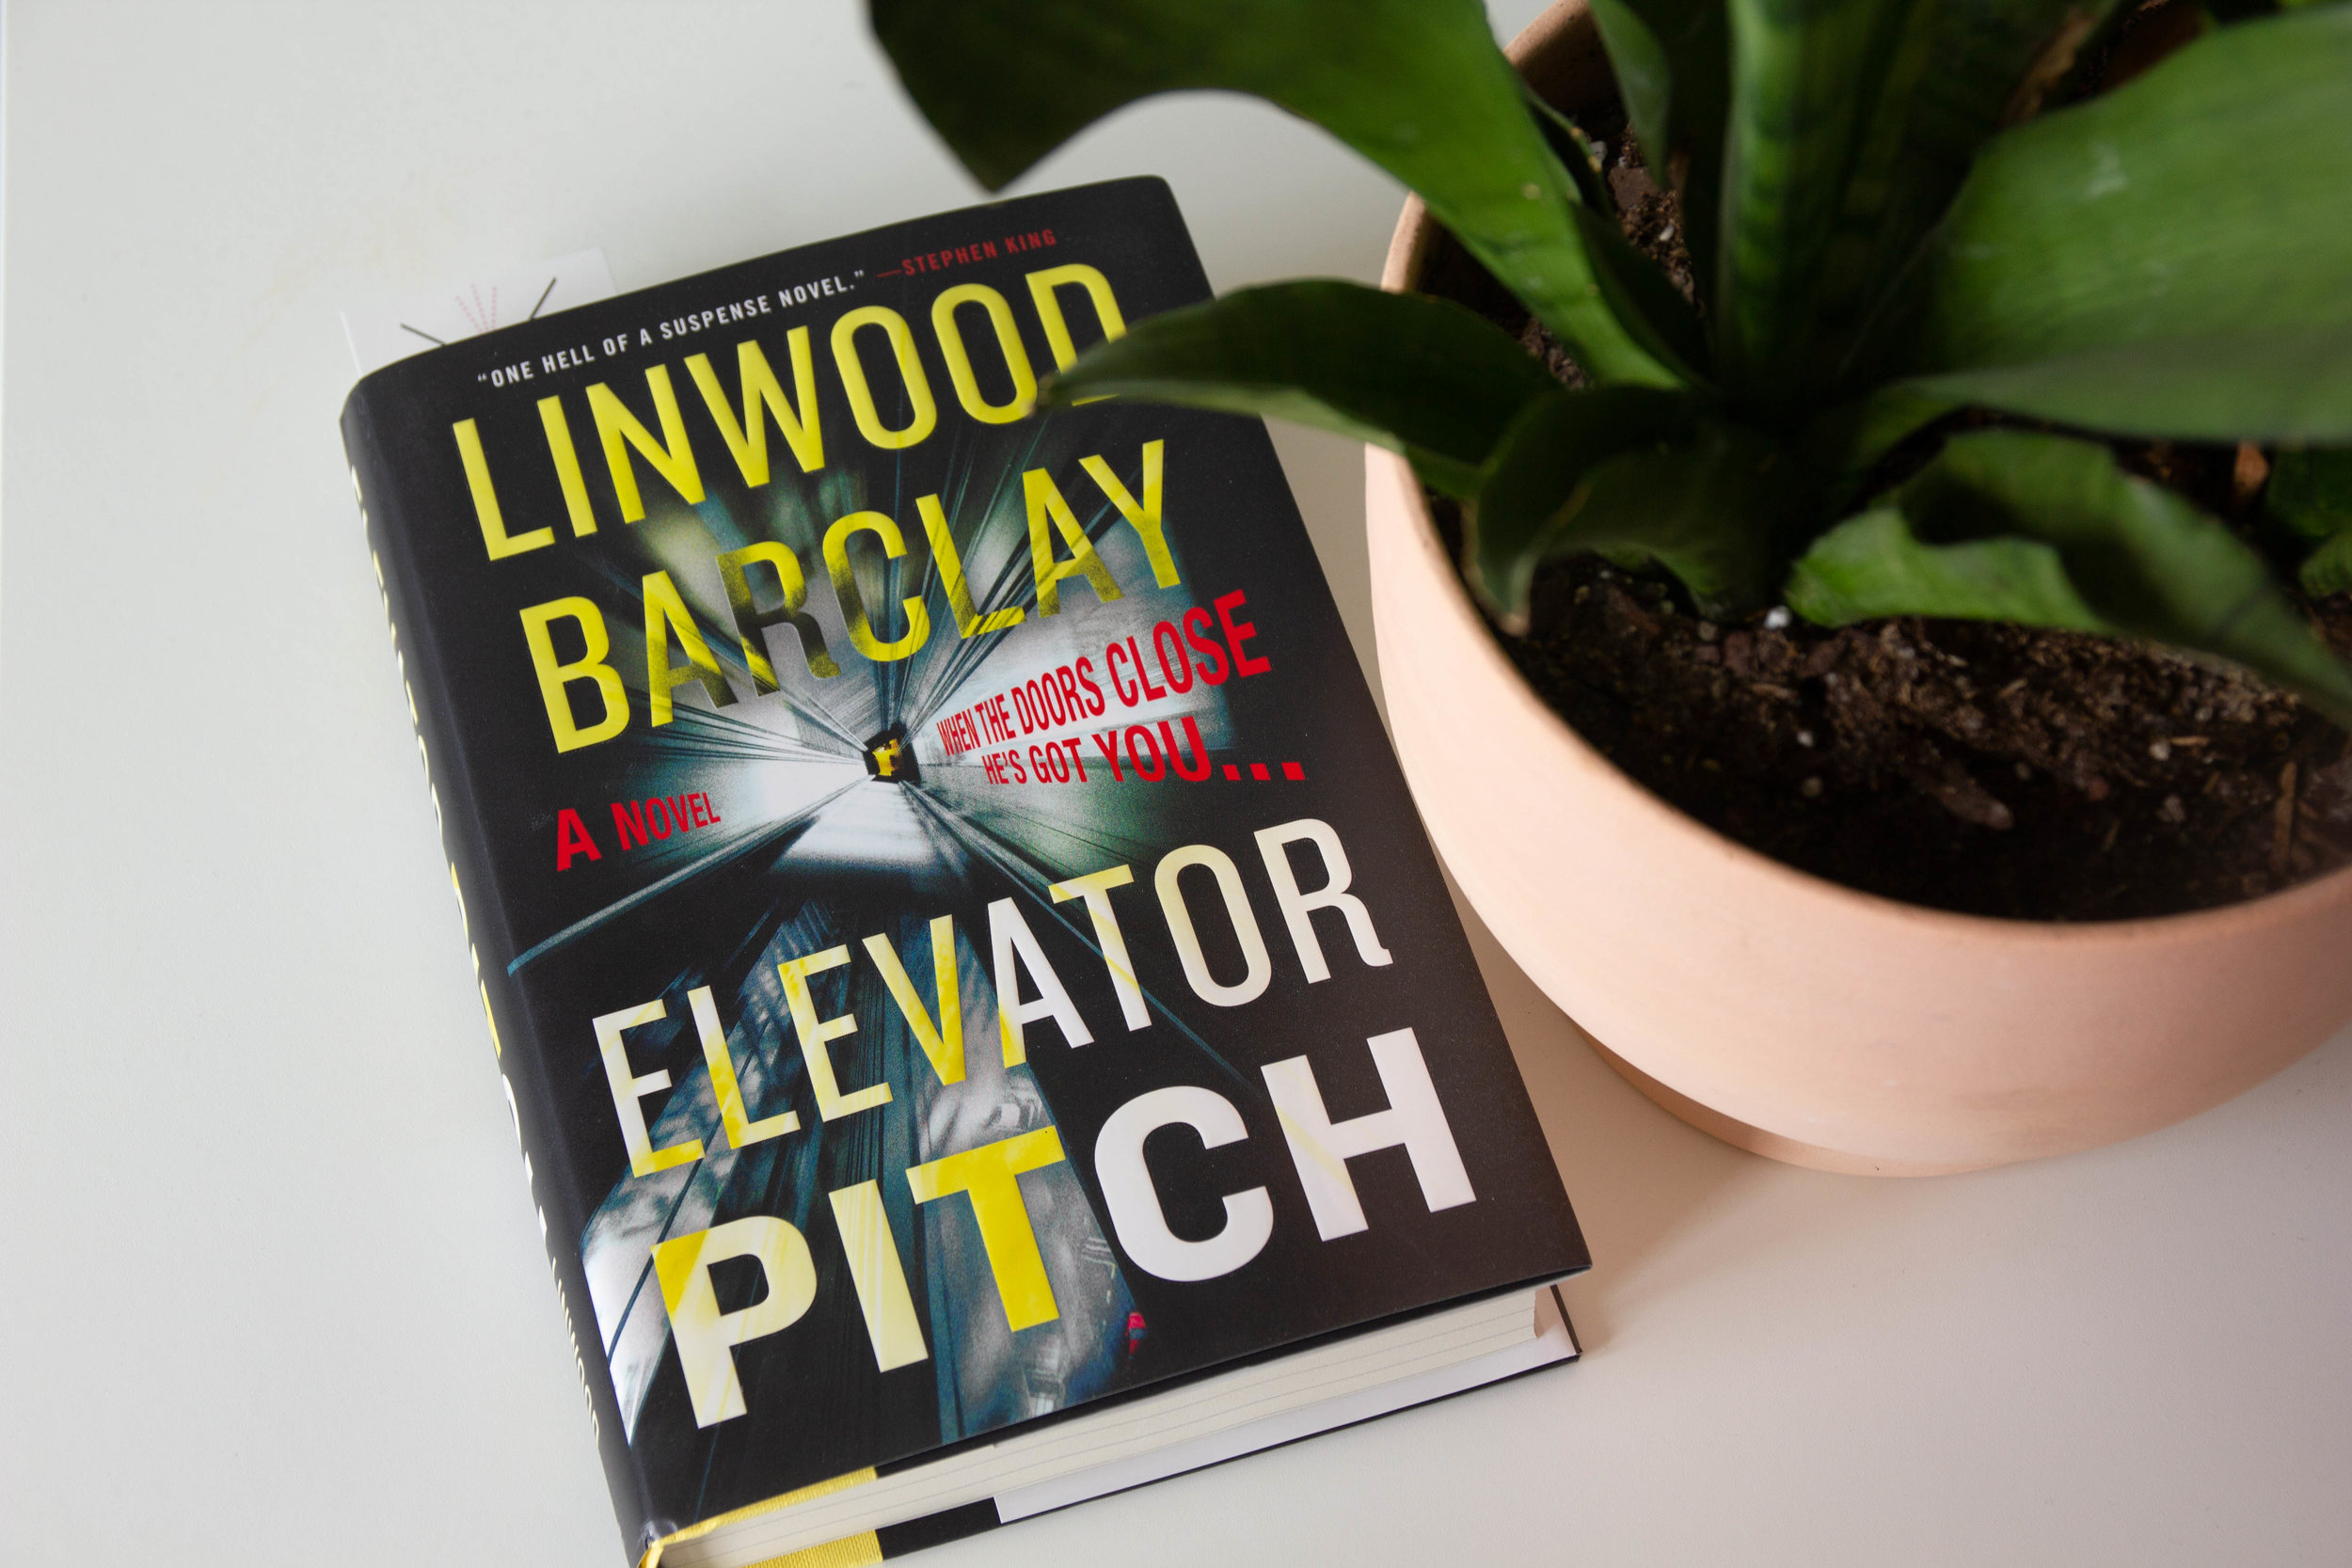 Book Feature - Elevator Pitch by Linwood Barclay